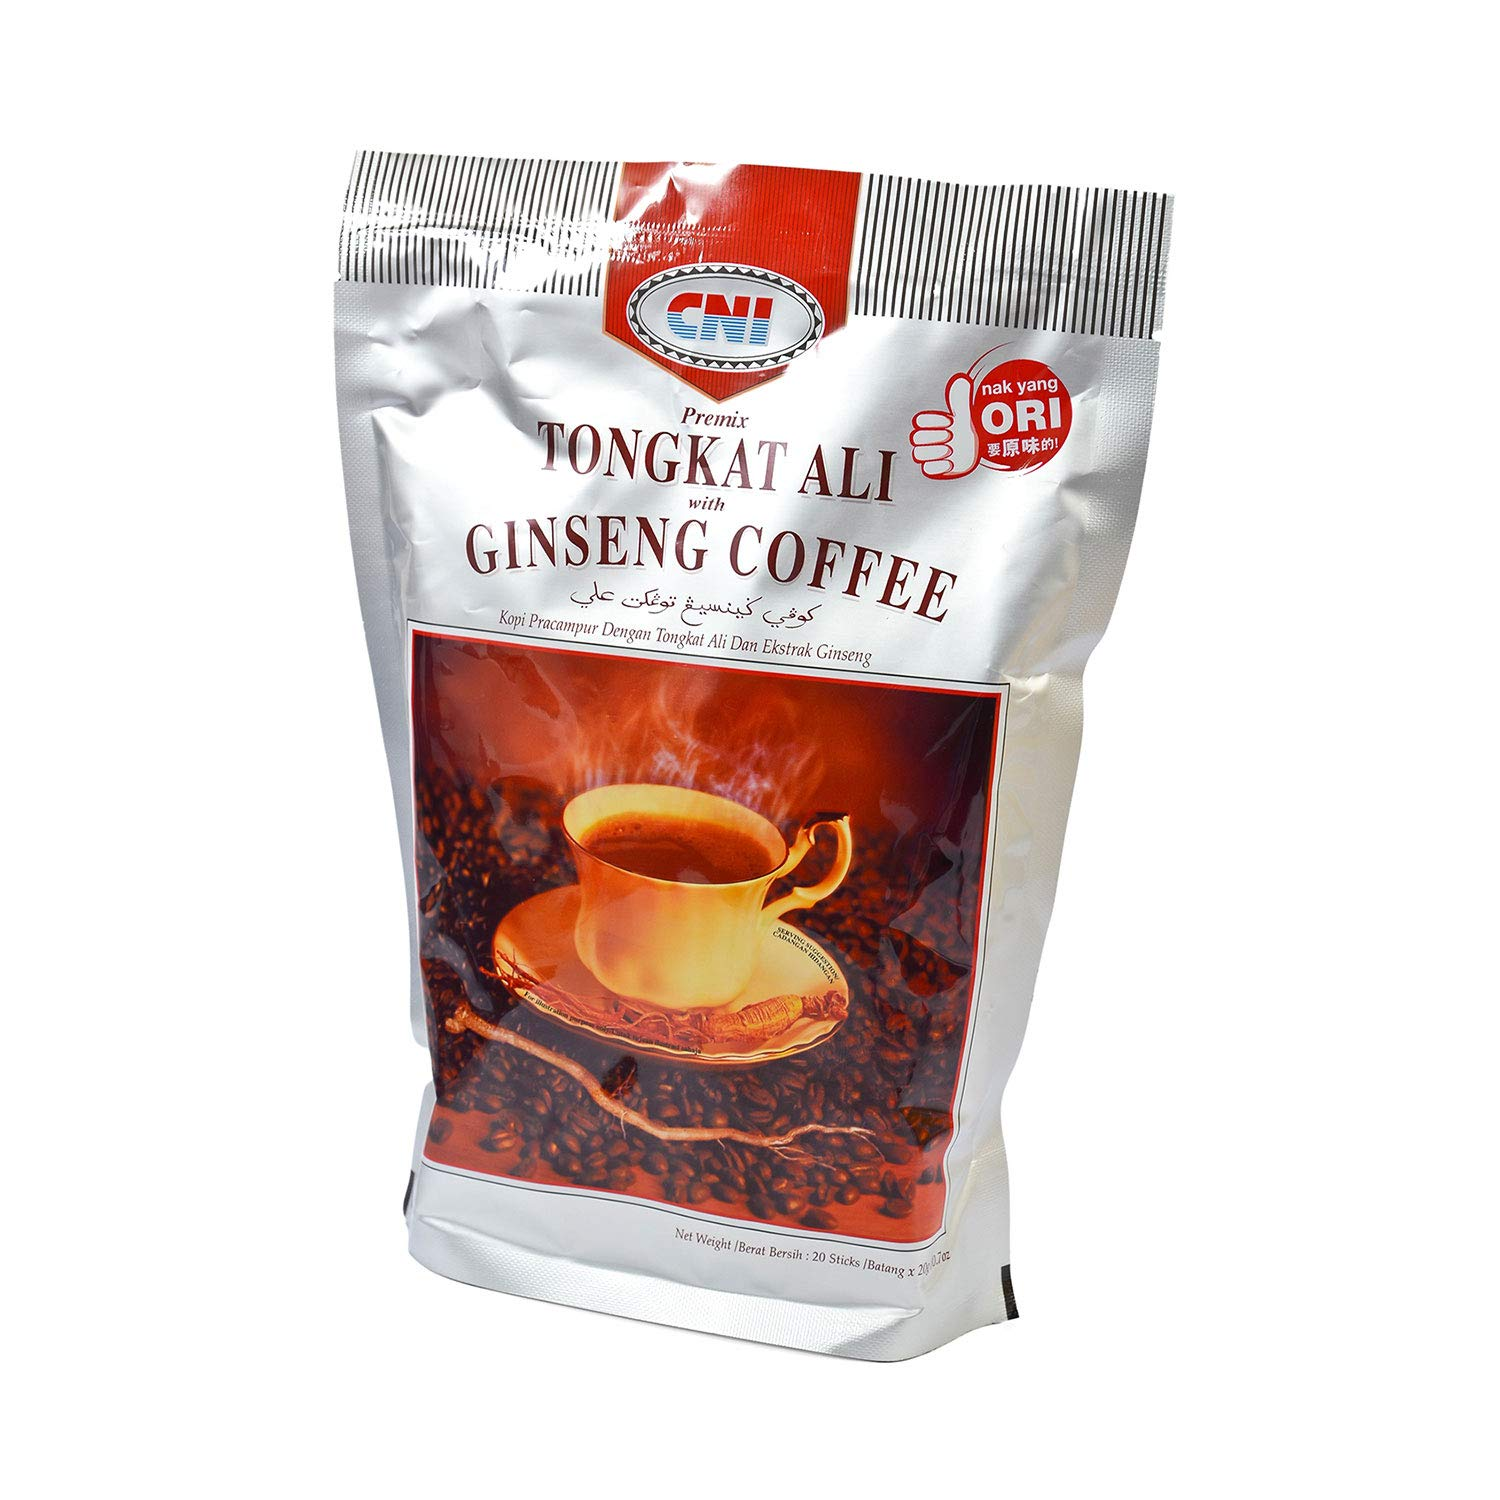 CNI Tongkat Ali Milwaukee Mall safety Coffee Ginseng with